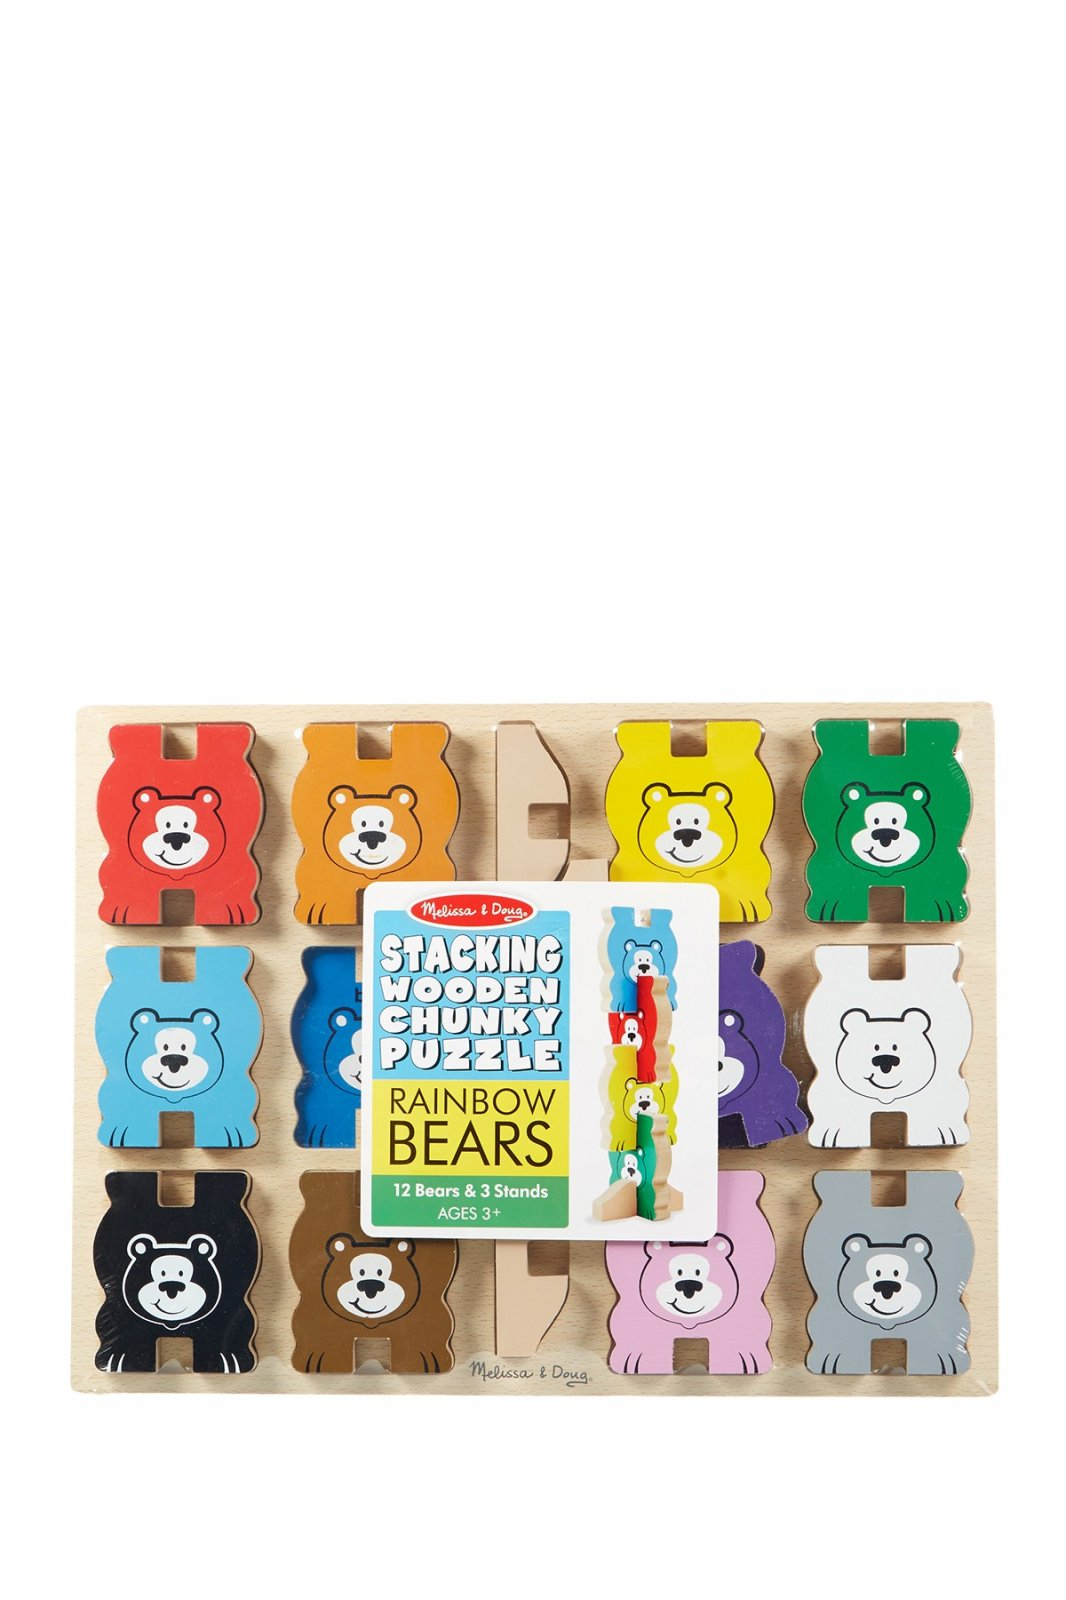 Rainbow Bears Stacking Wooden Chunky Puzzle